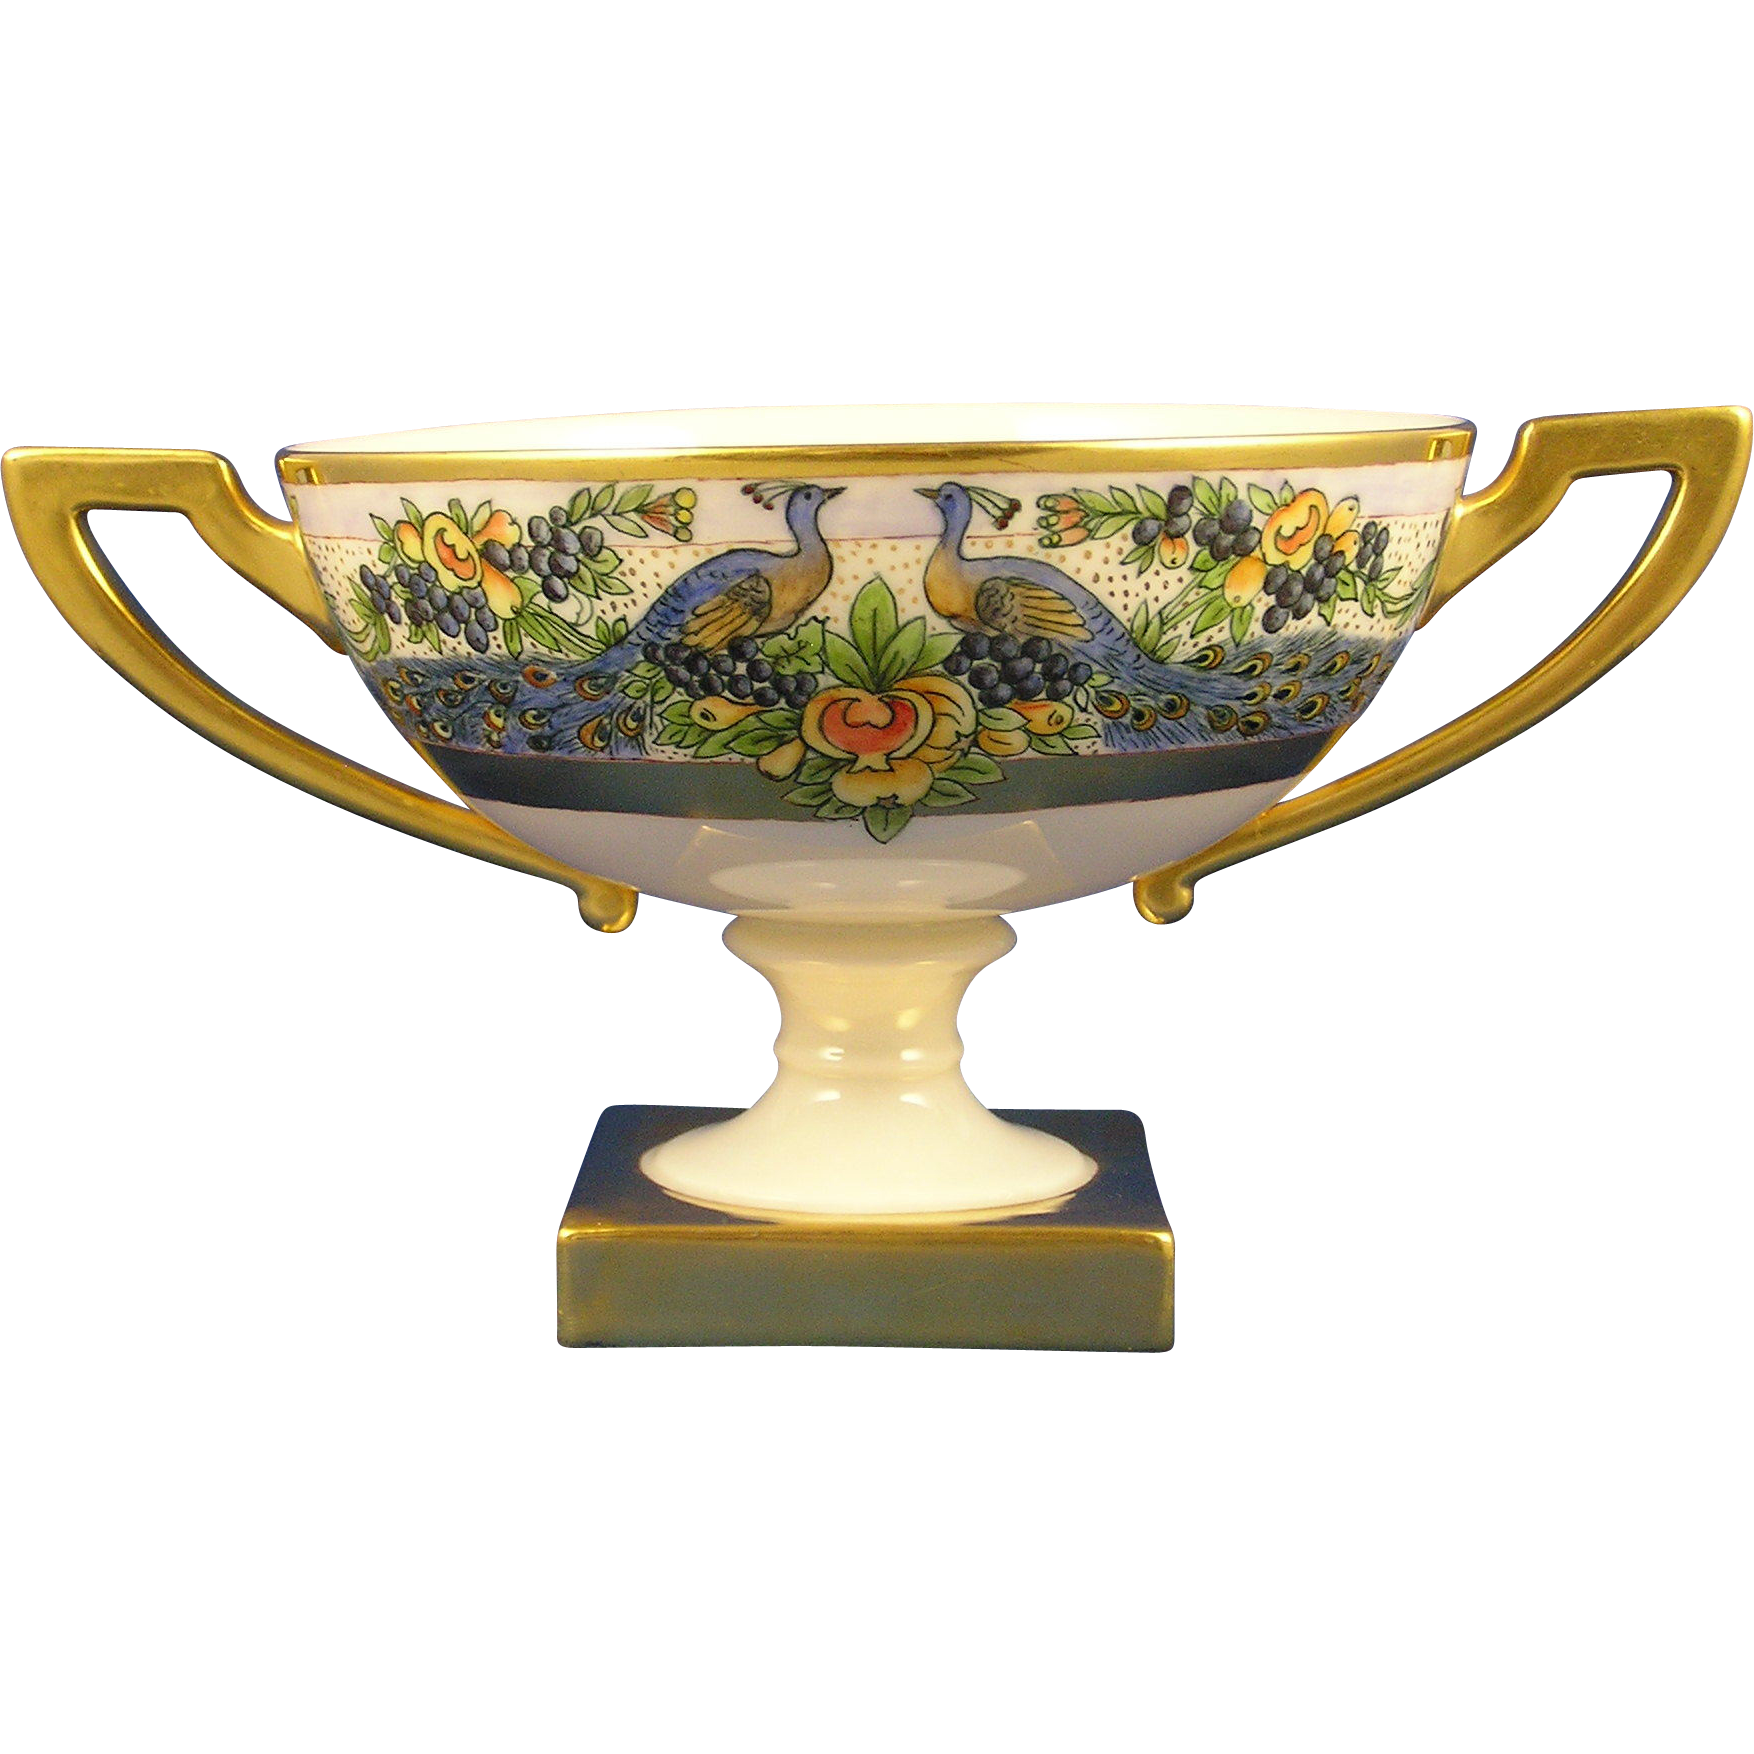 Lenox Belleek Arts & Crafts Peacock Design Pedestal Bowl (c.1909-1924) - Keramic Studio Design